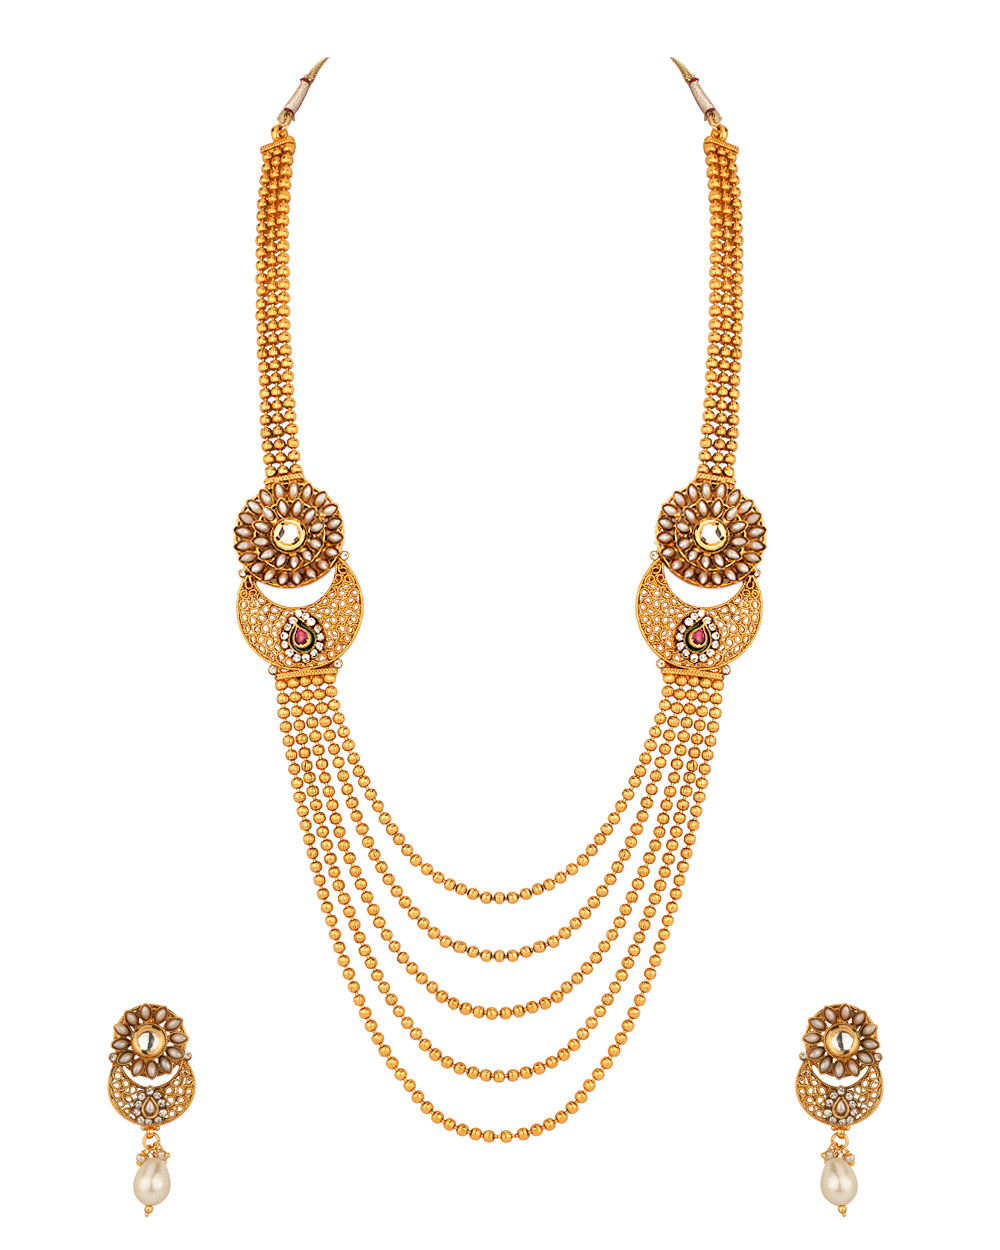 Buy Necklace Set with Gold Plated Bead Strands; Pearl Floral ...